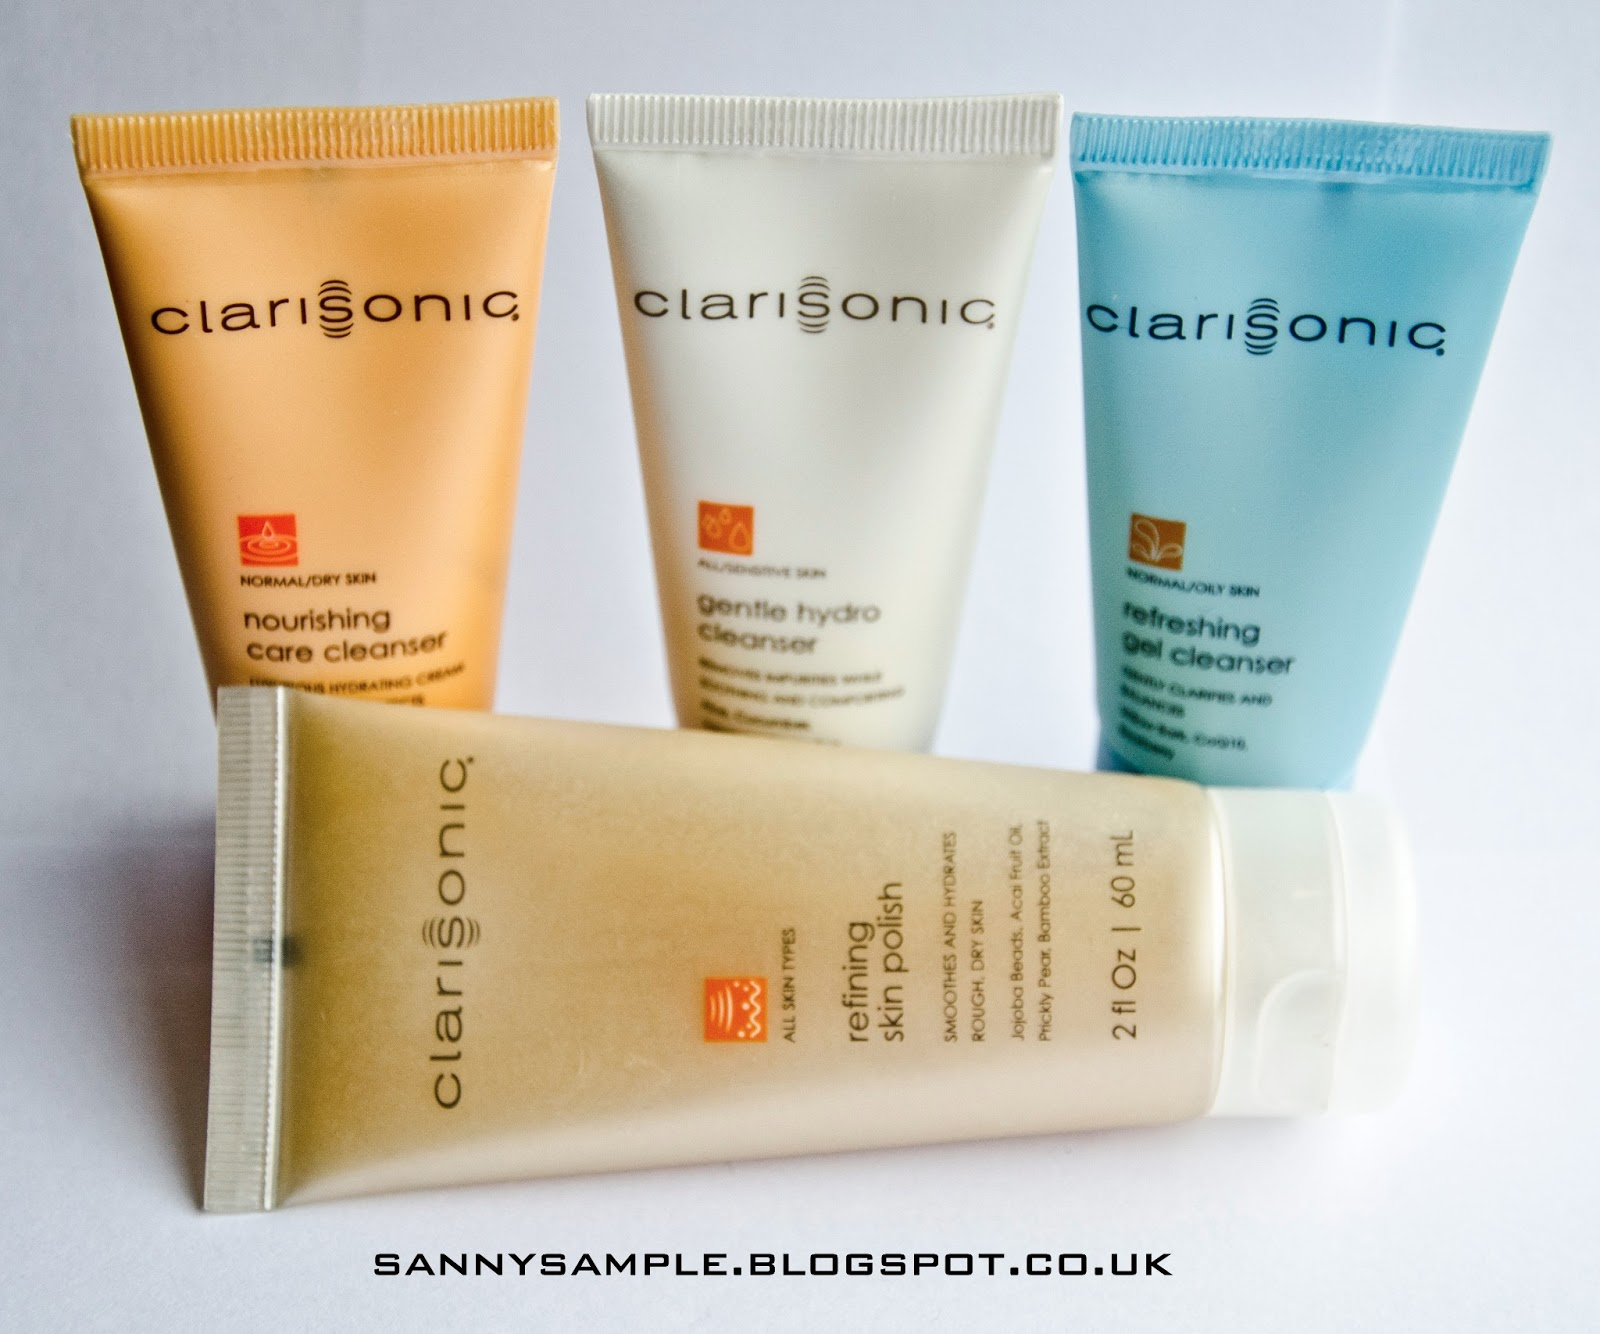 Neutrogena facial cleanser vs clarisonic